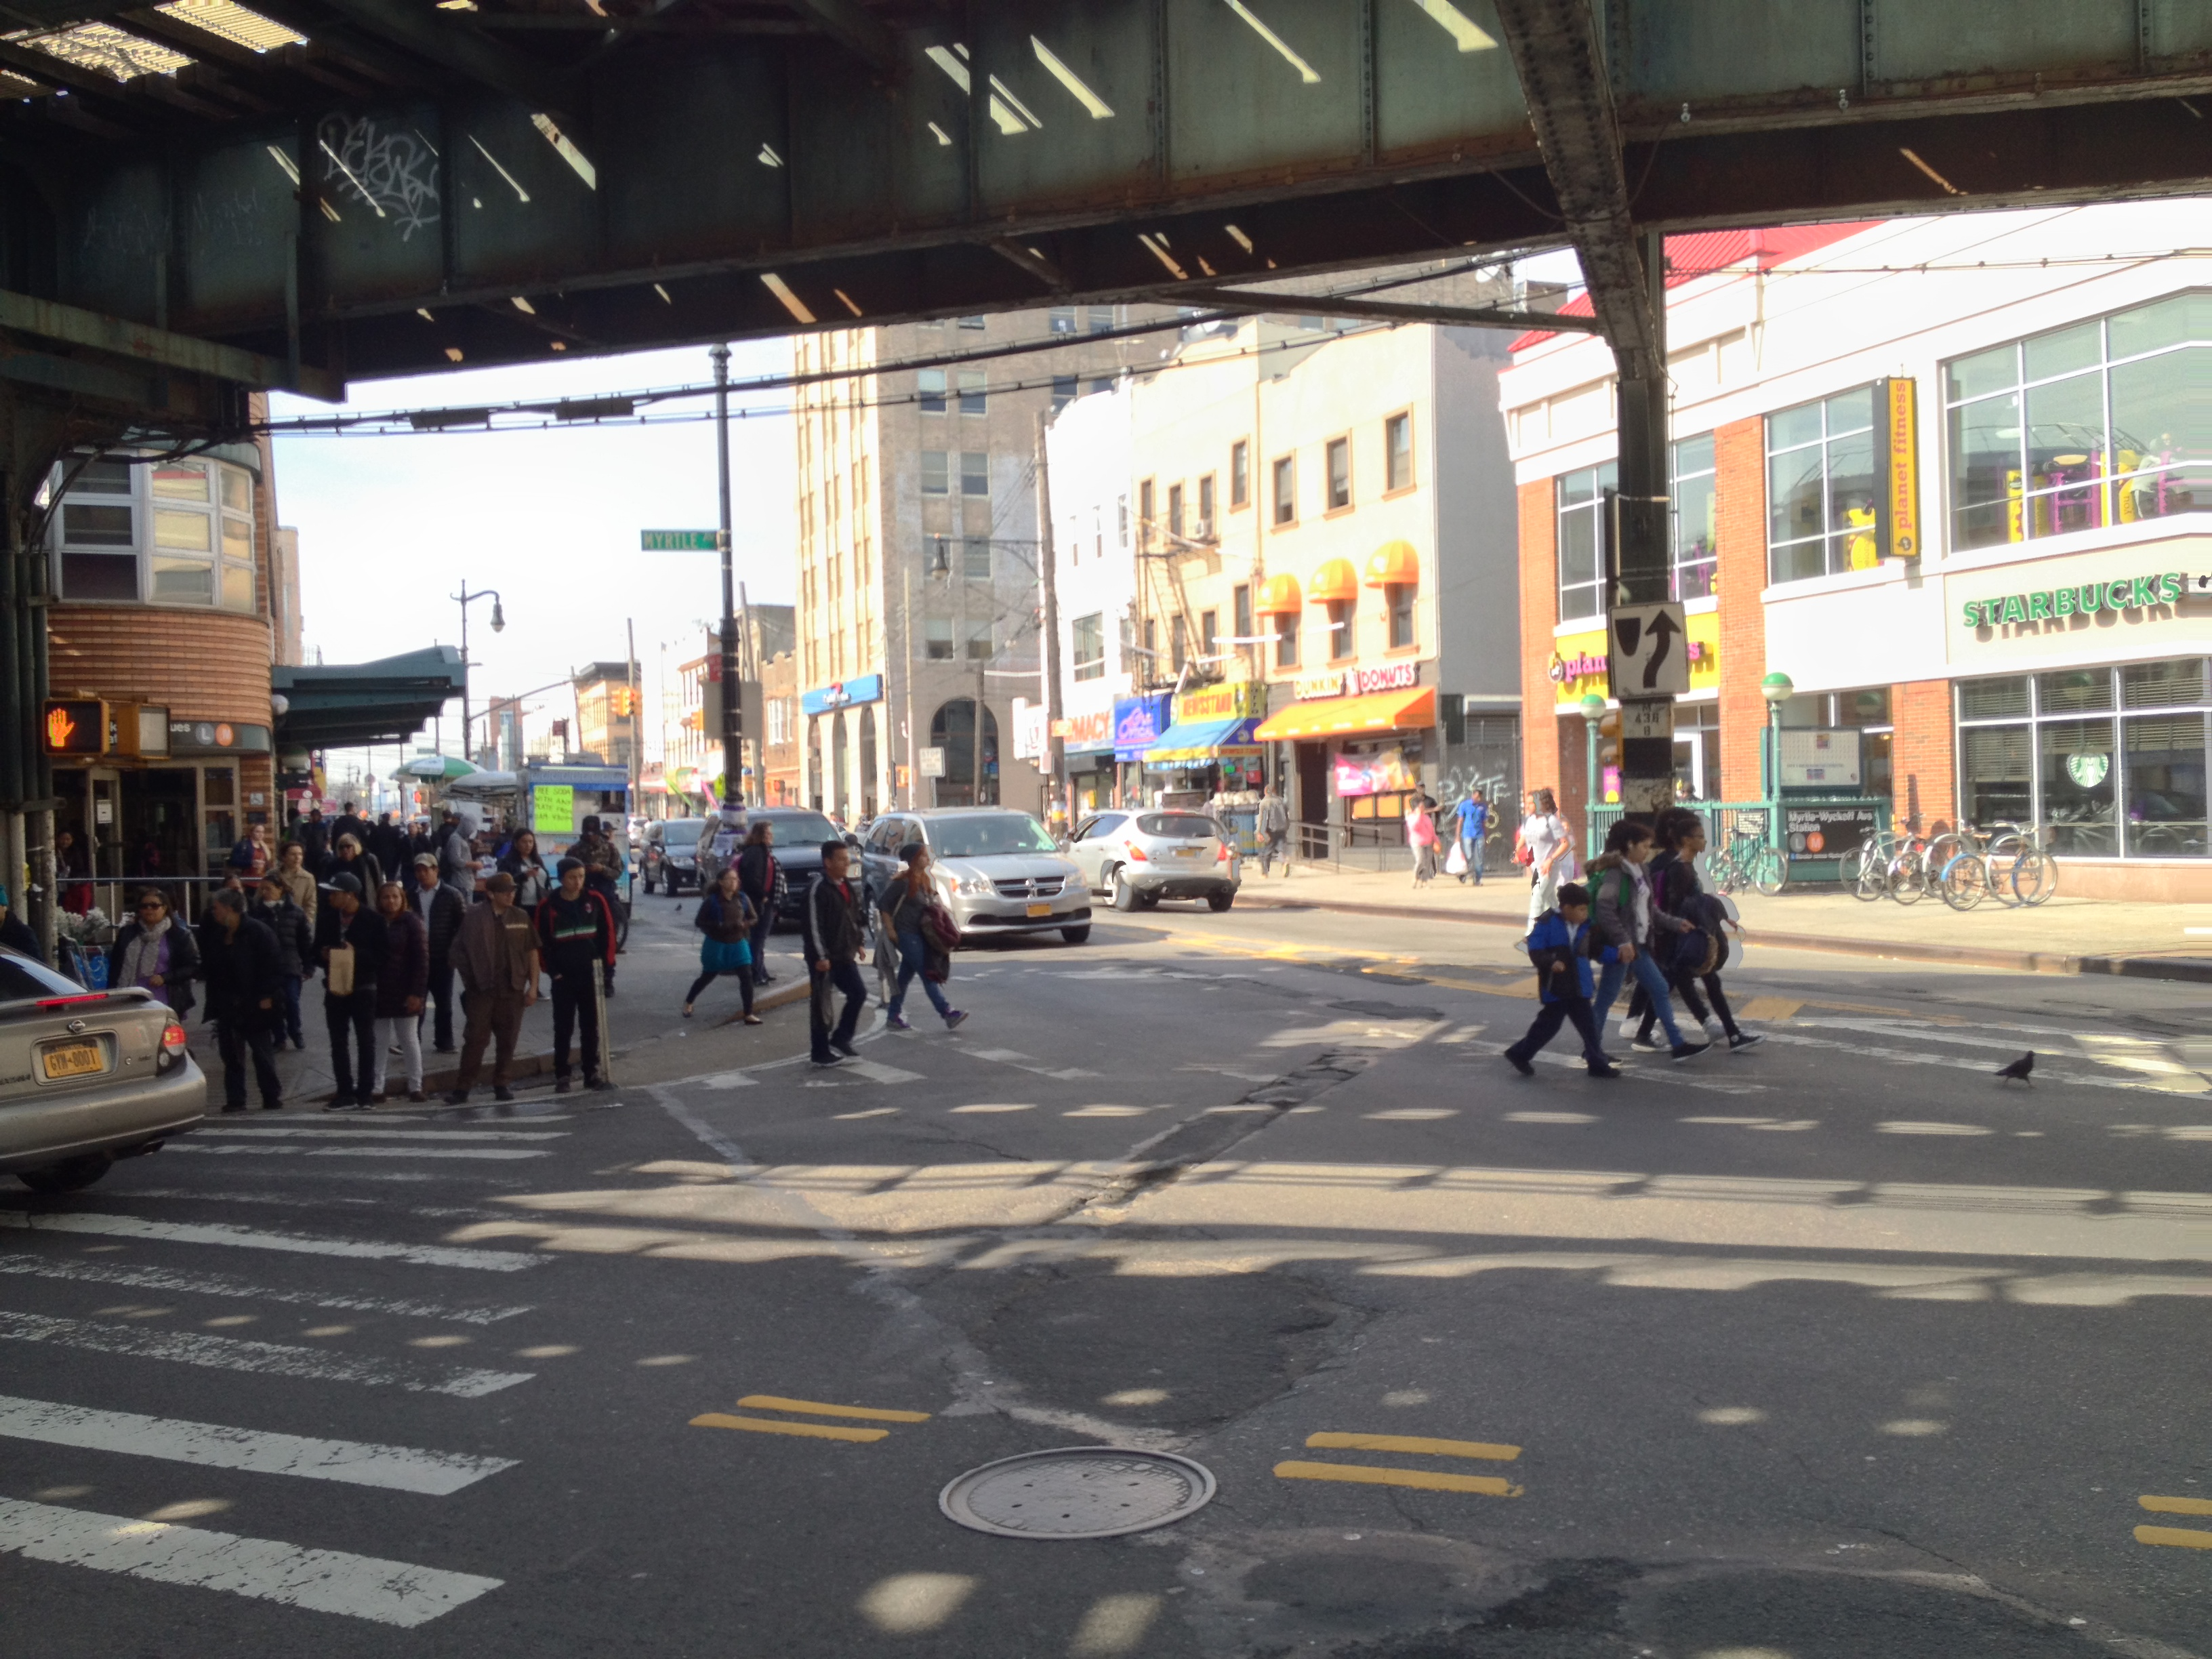 A photo of the intersection of Myrtle/Wyckoff intersection before the plaza. In it, there are crowds of people waiting to cross the street.